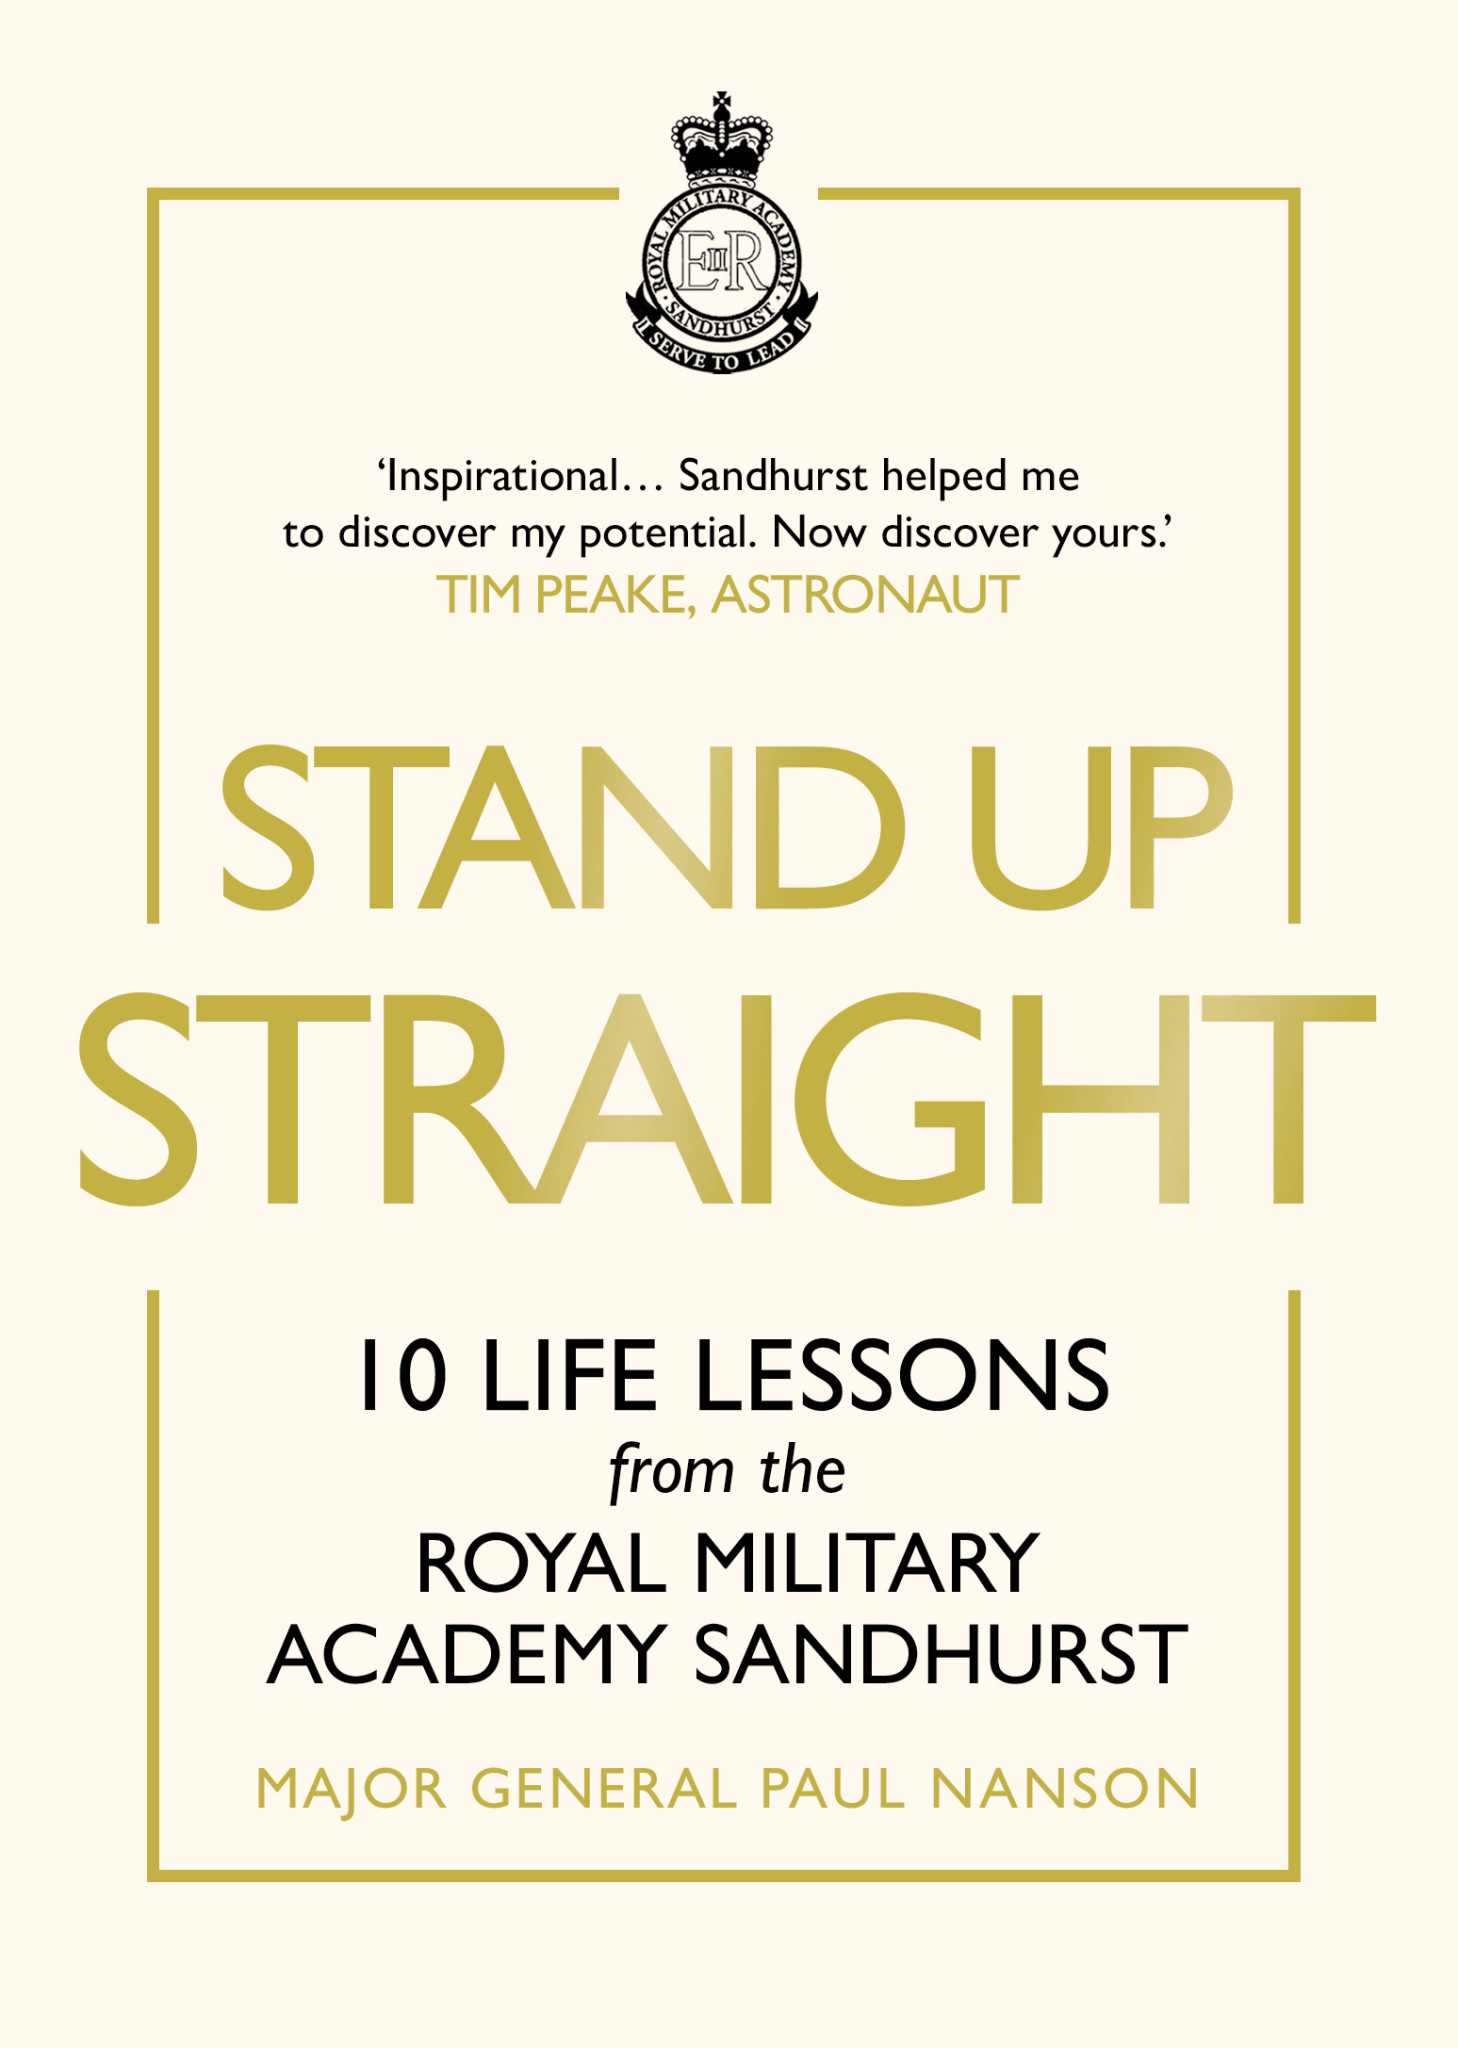 Stand Up Straight 10 Life Lessons from the Royal Military Academy Sandhurst Author Paul Nanson